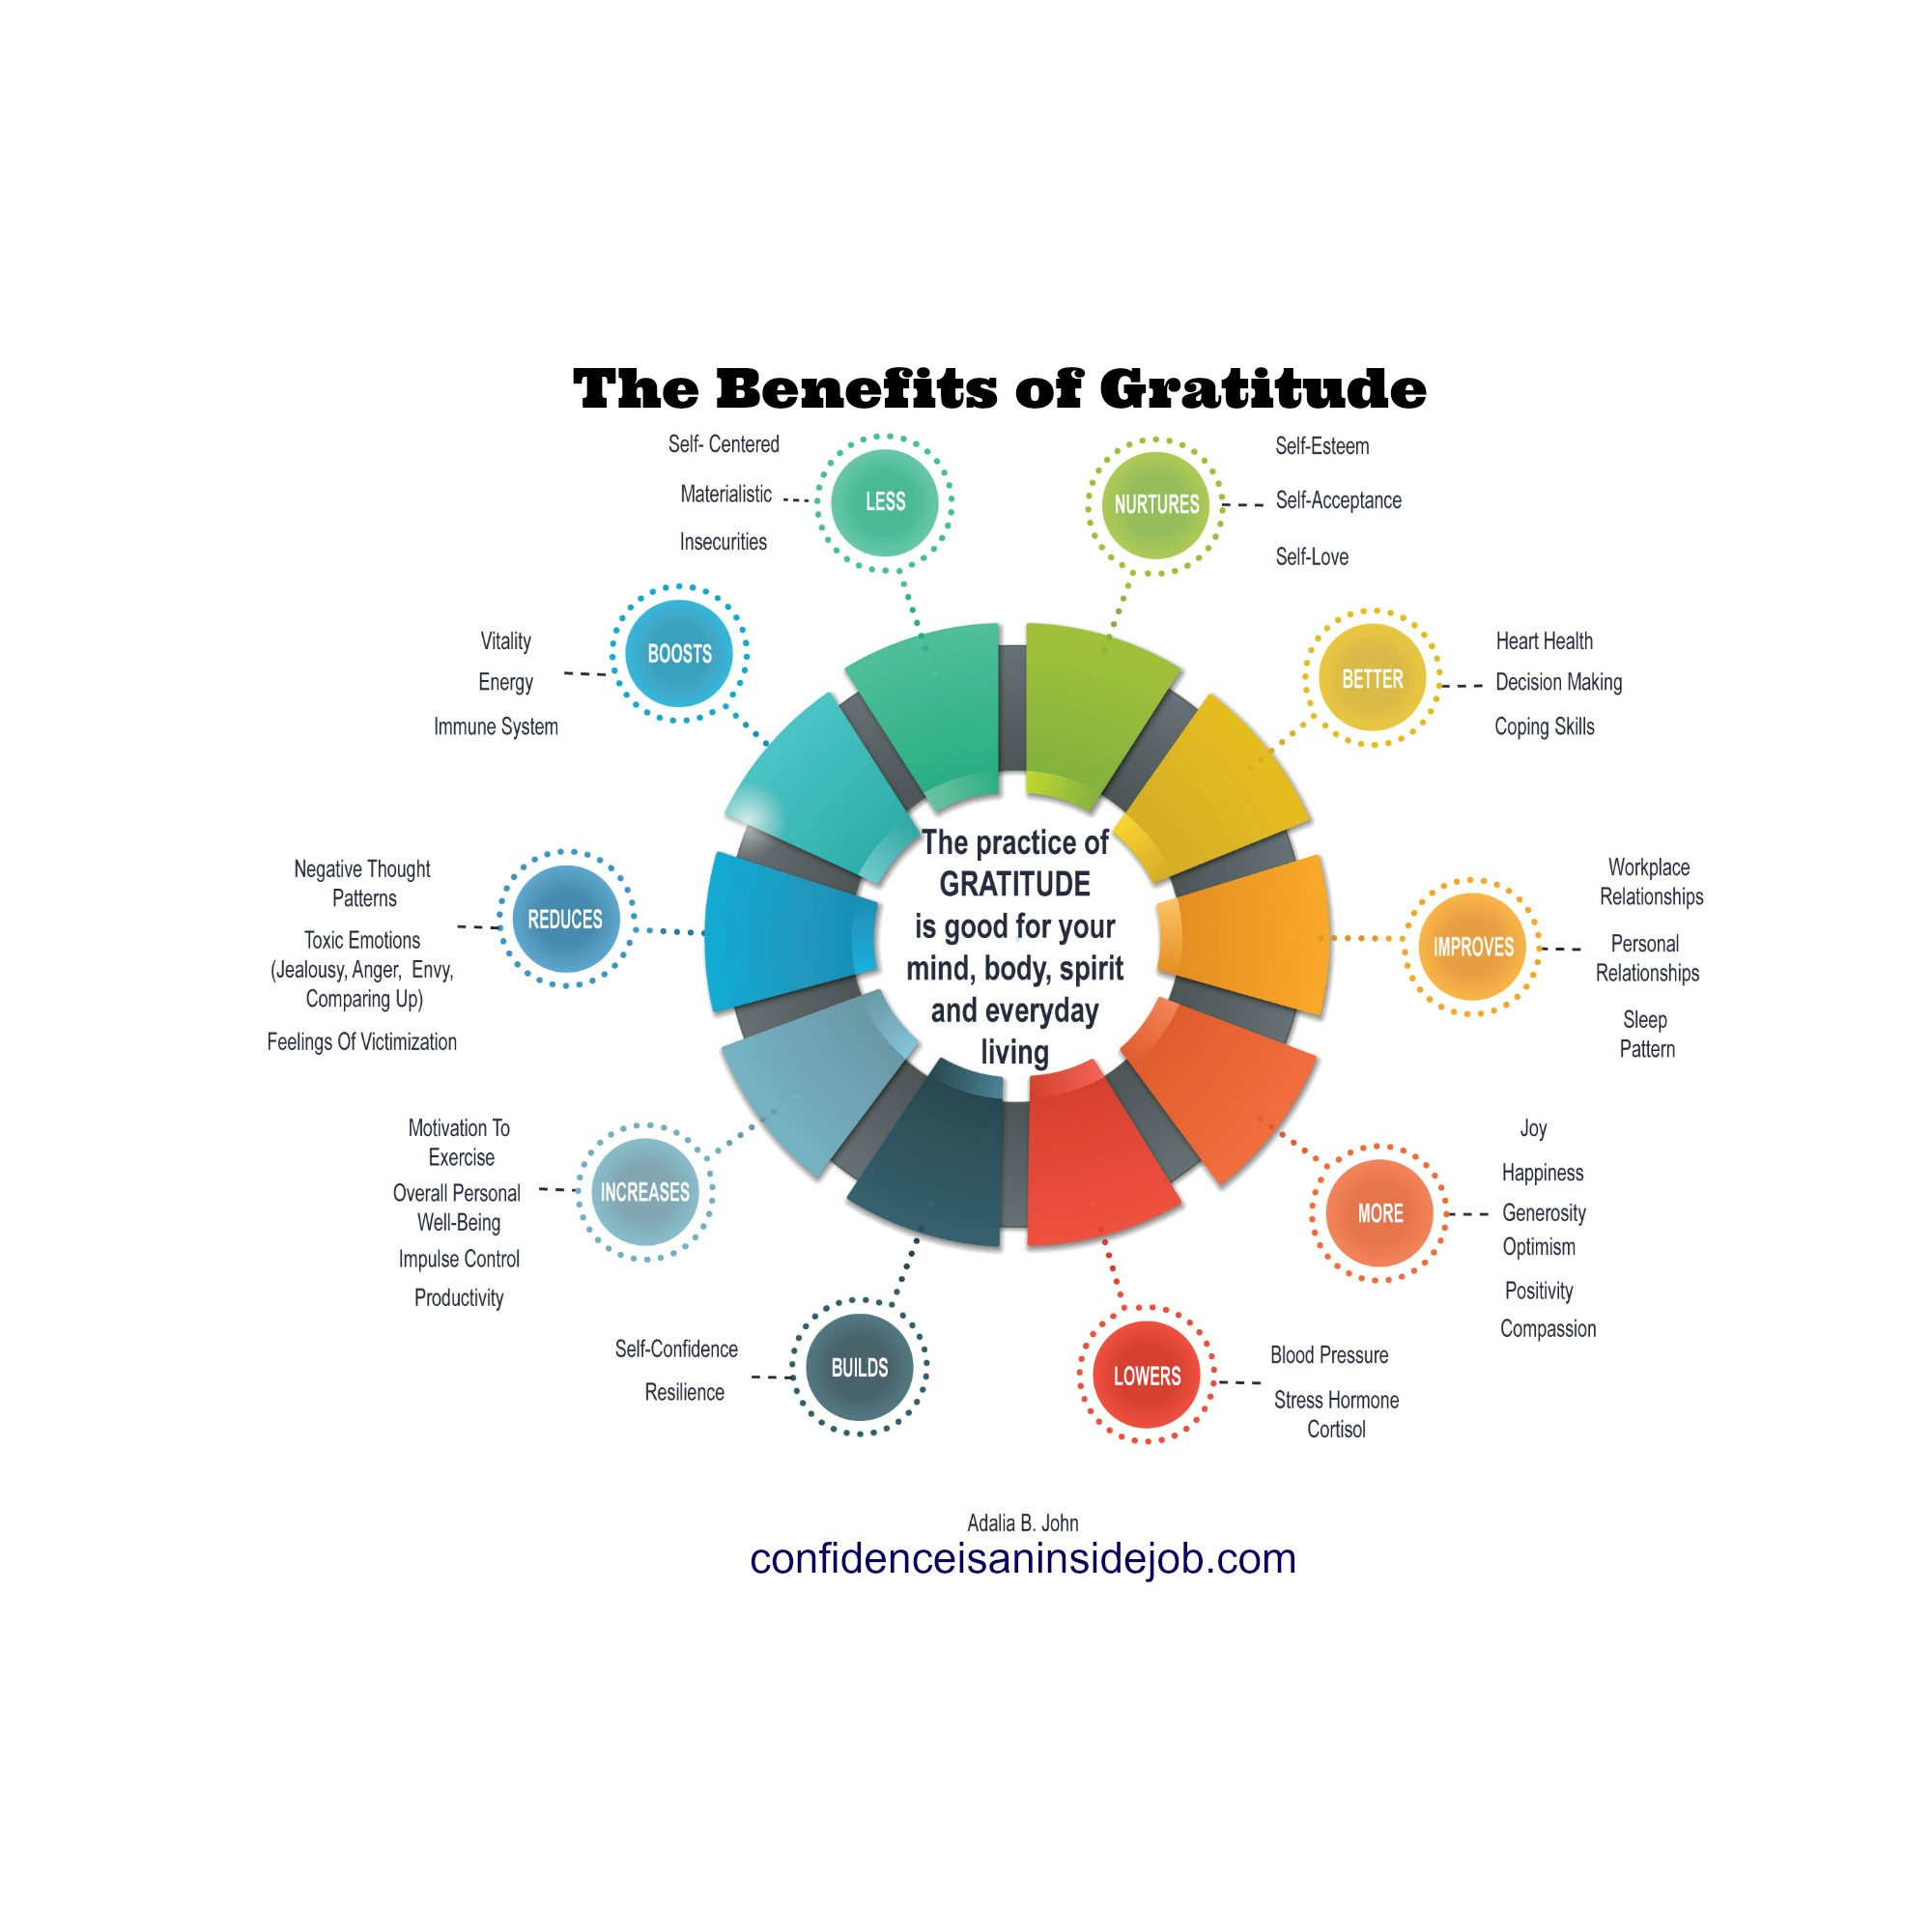 Gratitude Infographic: Some of the Many Benefits of Gratitude